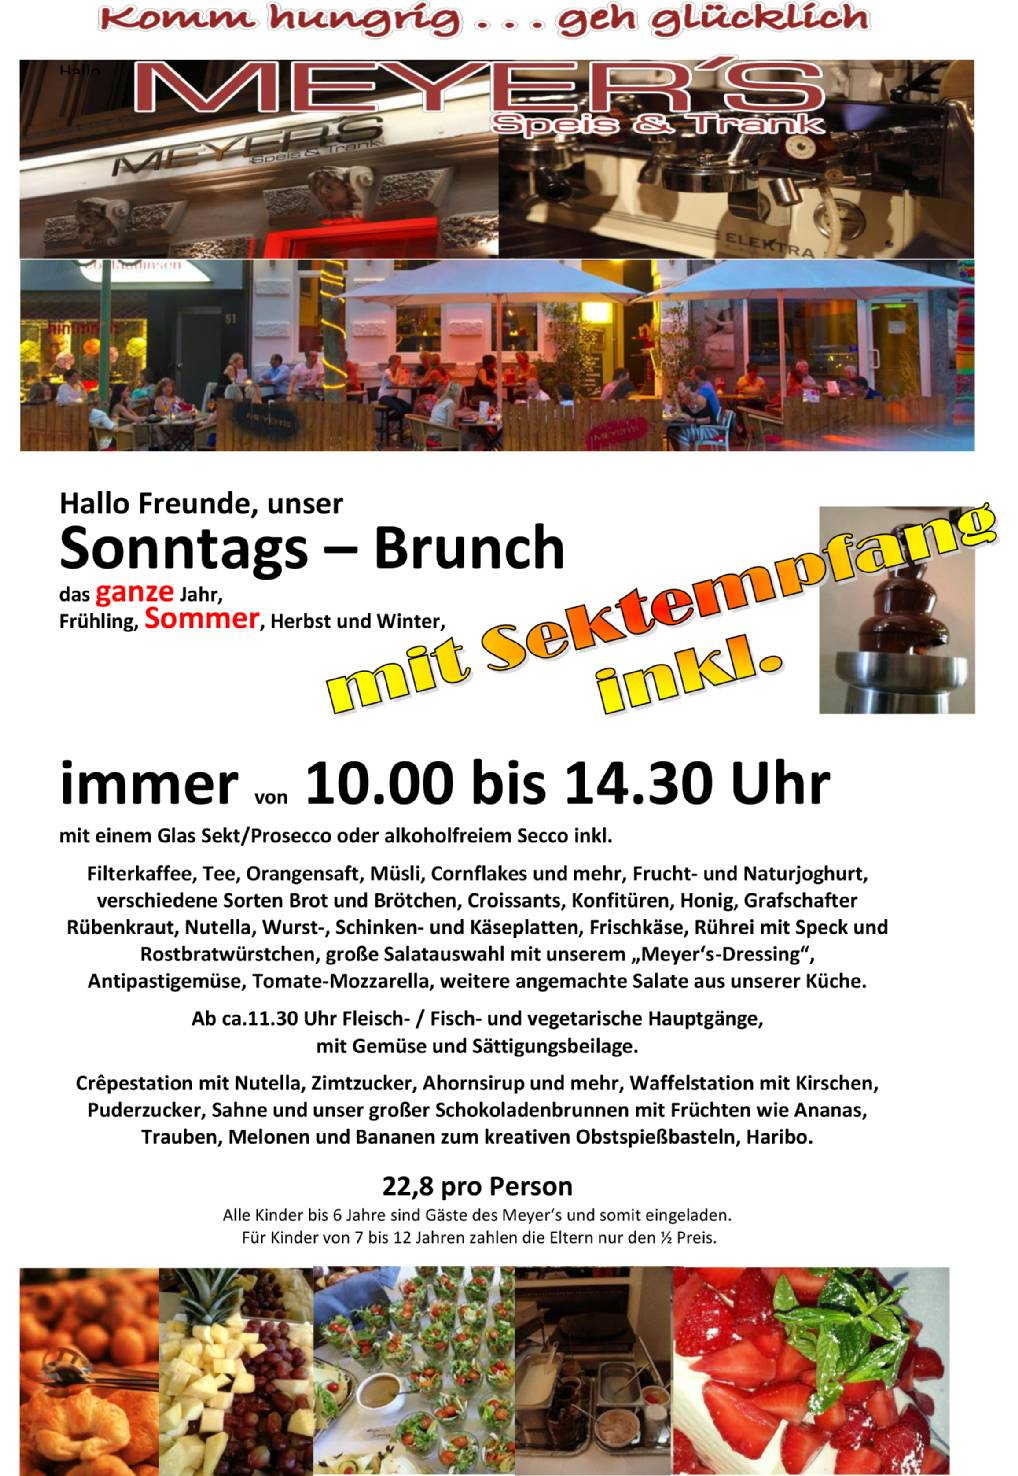 Brunch Bonn, lecker Brunchen, Sonntagsbrunch